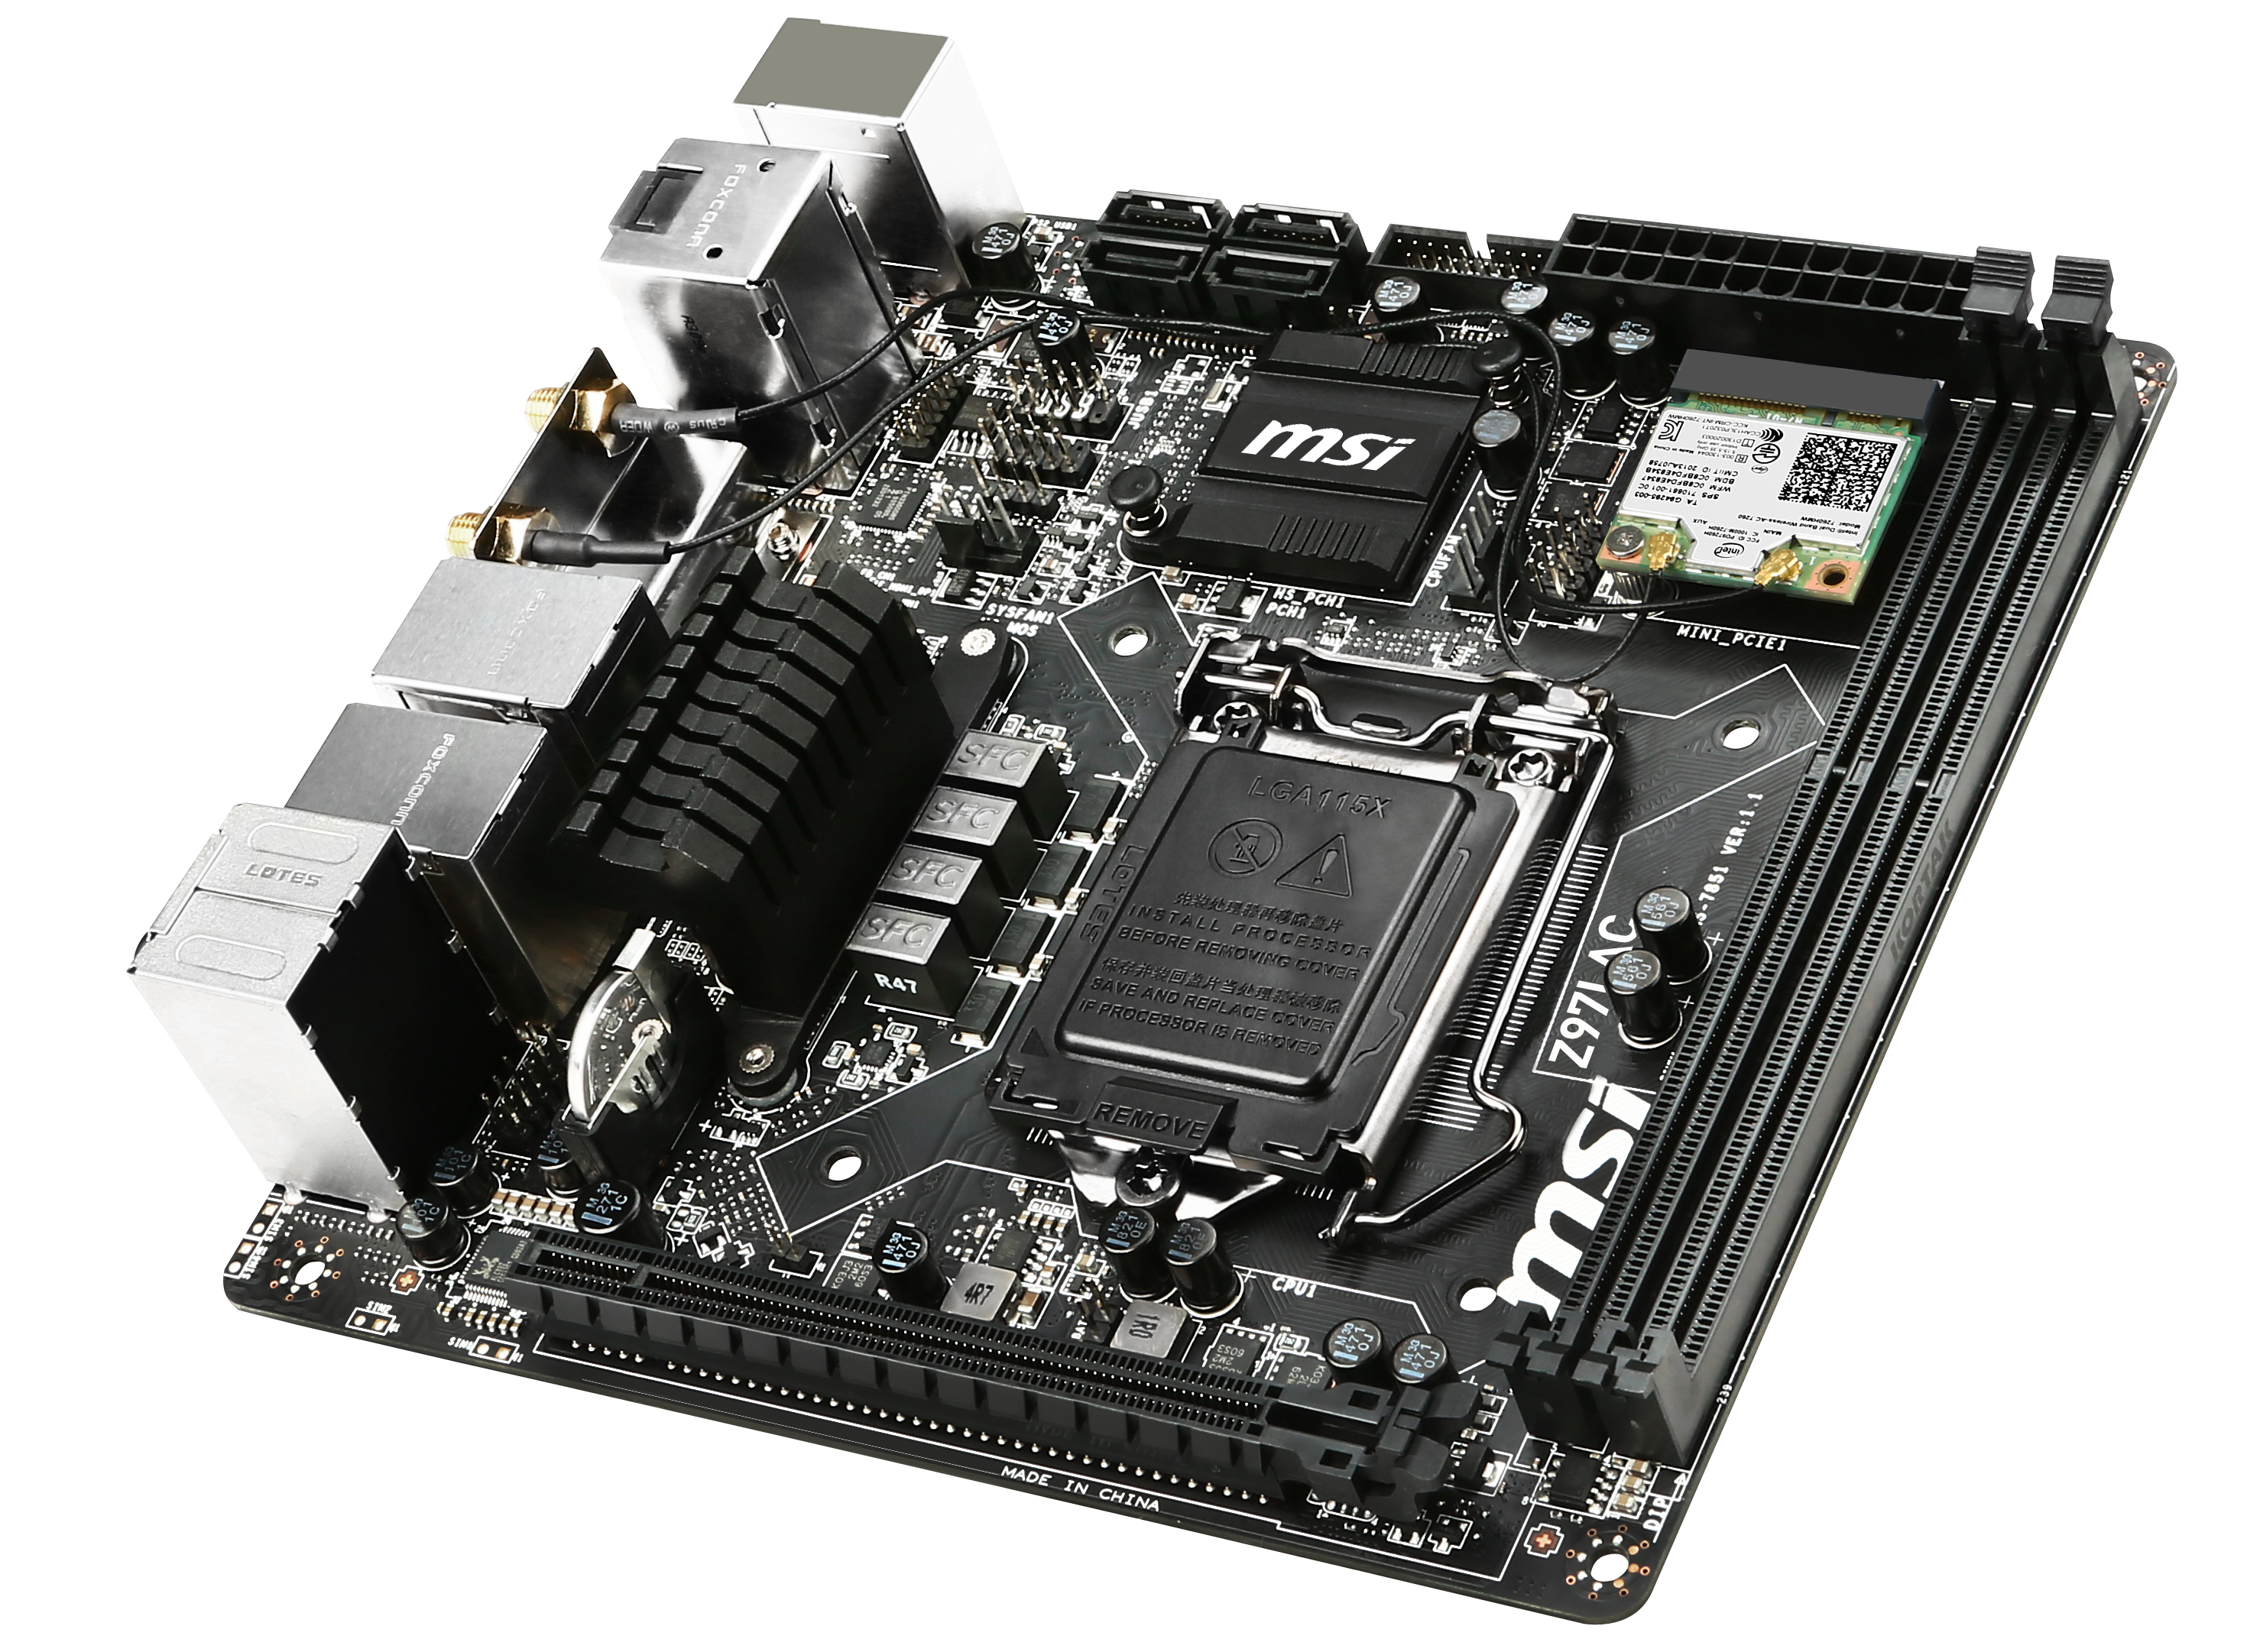 Z97 Mini-ITX Review at $140: ASRock, MSI and GIGABYTE